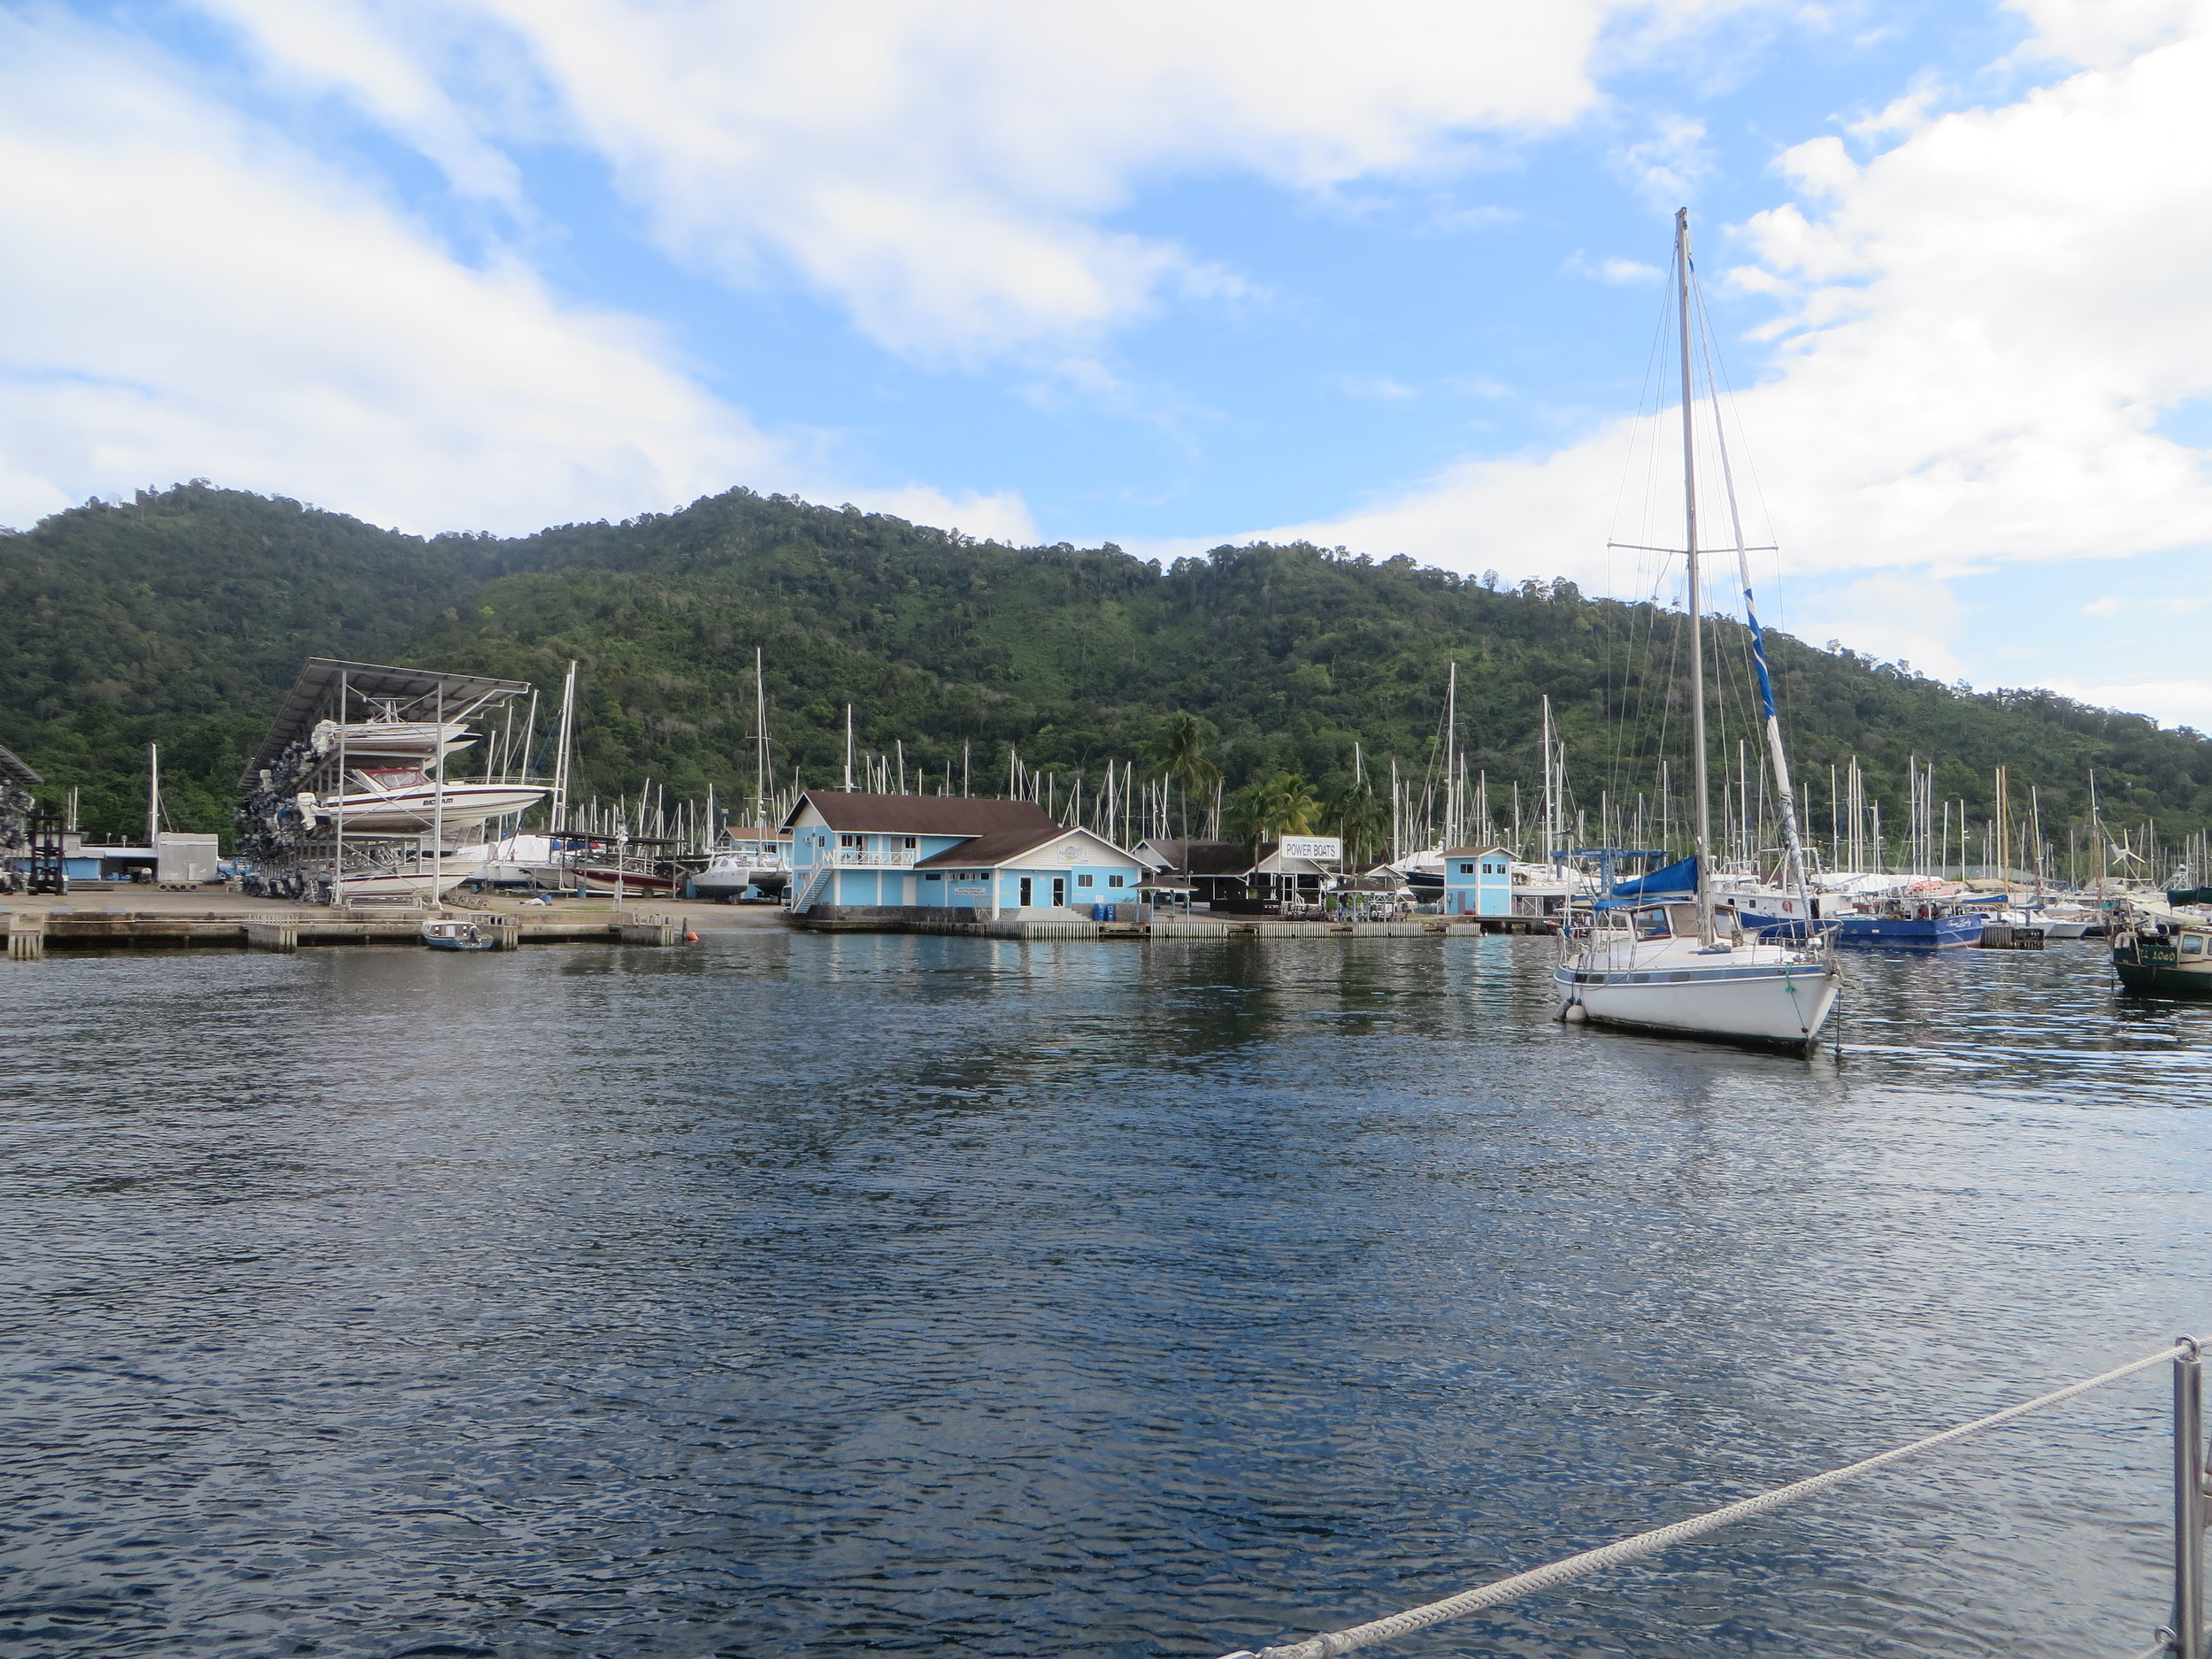 Masts, masts and more masts! Arrival in Chaguaramas, Trinidad - December 2015